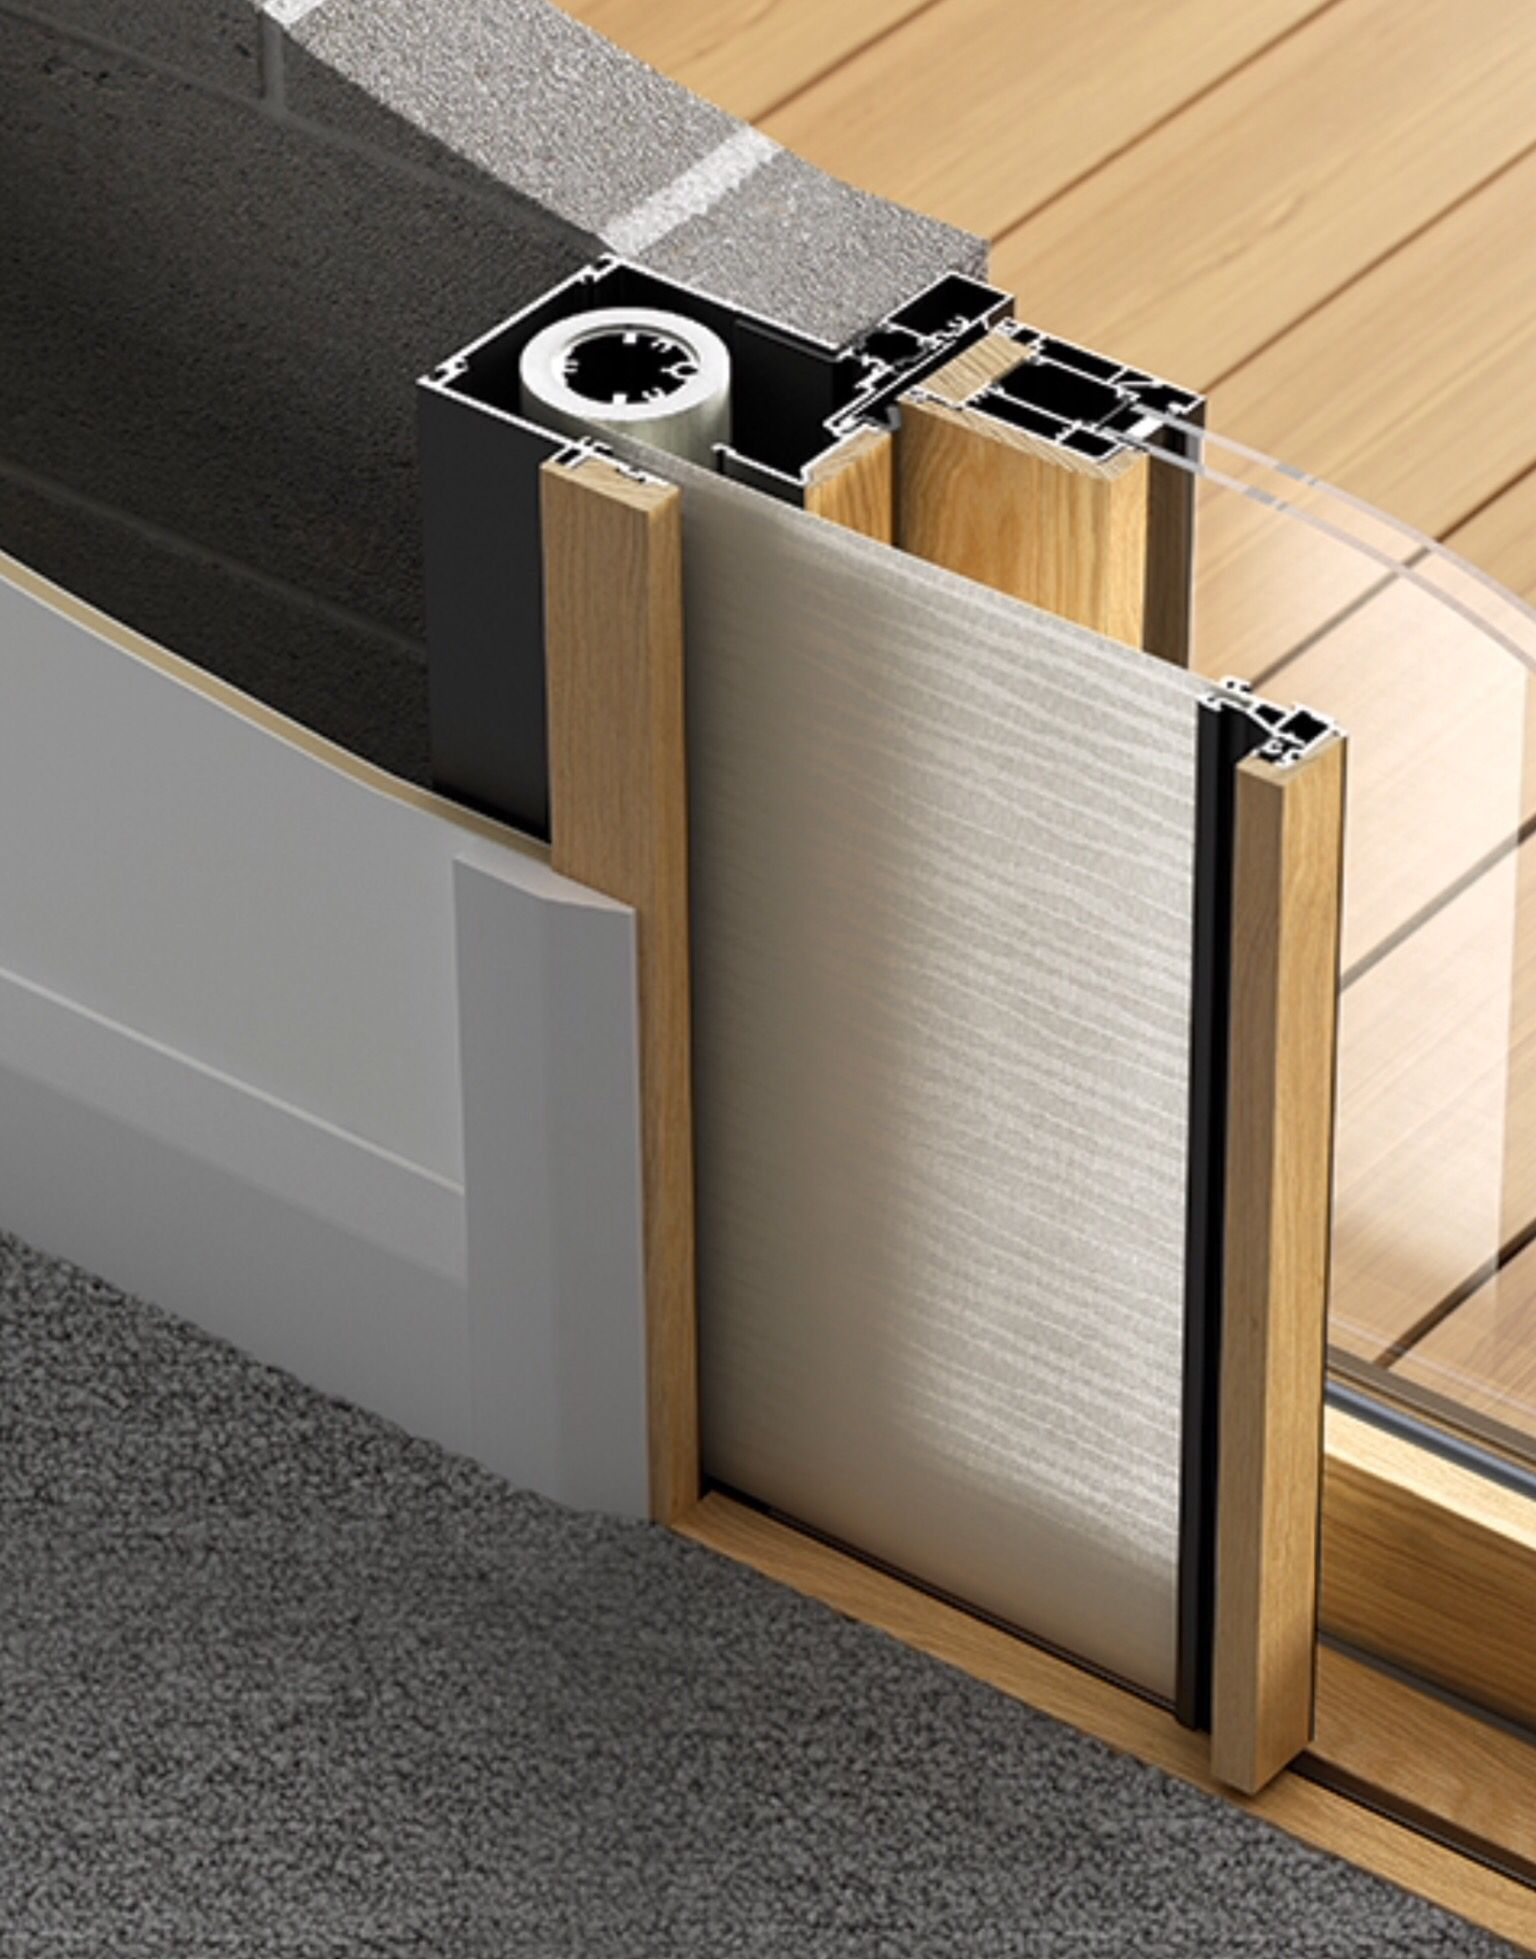 Doors \u2013 Integrated Sliding Doors | Centor & Doors \u2013 Integrated Sliding Doors | Centor | ideas | Pinterest ...